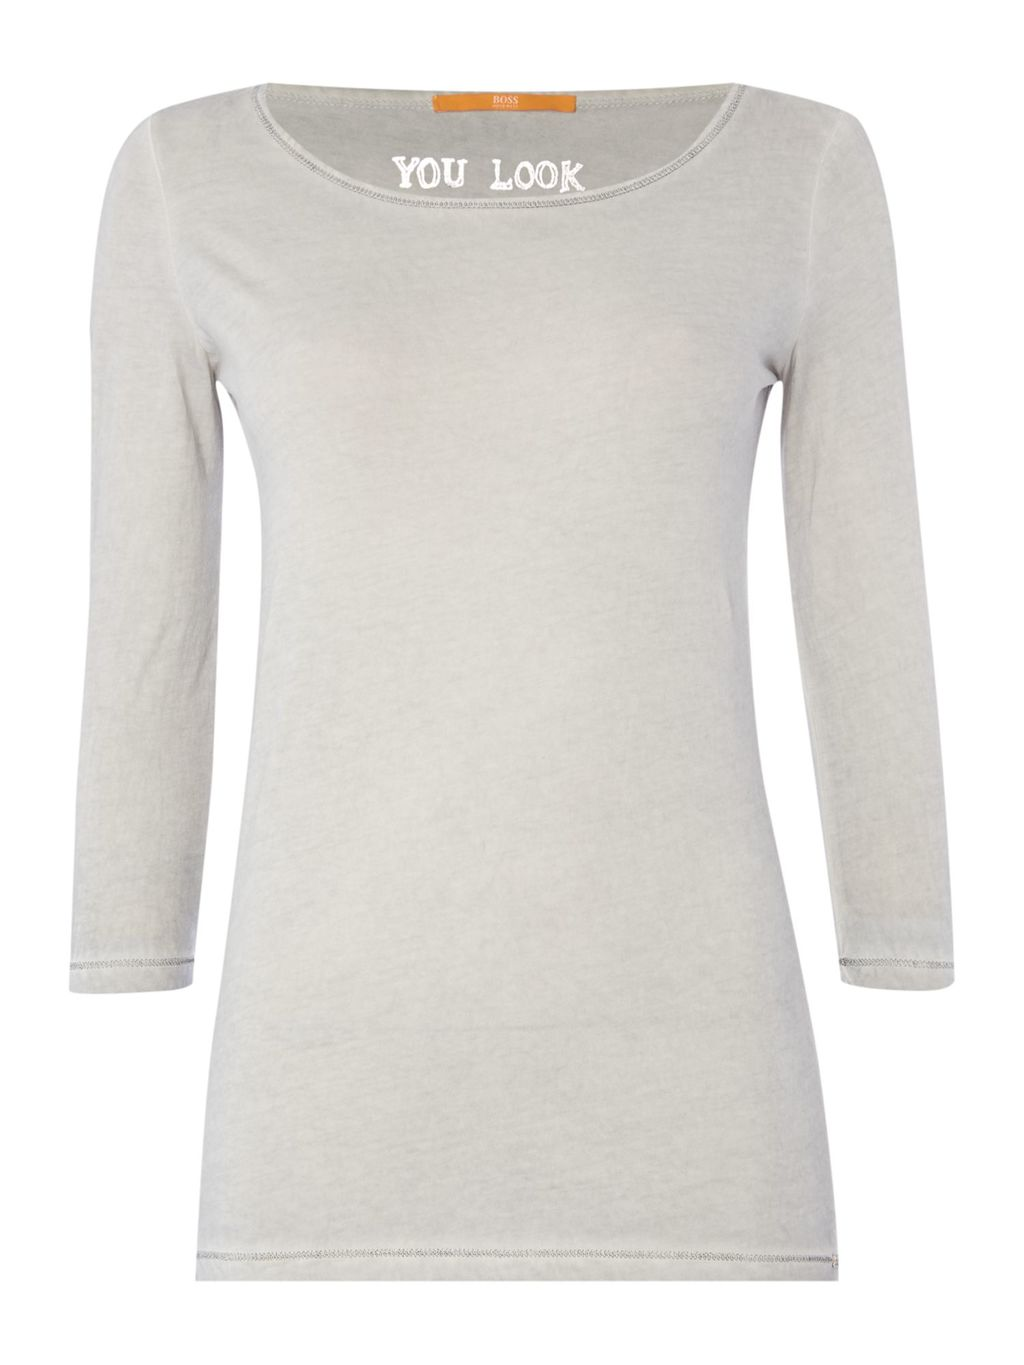 Jersey Top With 3/4 Sleeve, Charcoal - pattern: plain; style: t-shirt; predominant colour: mid grey; occasions: casual; length: standard; neckline: scoop; fibres: cotton - stretch; fit: body skimming; sleeve length: 3/4 length; sleeve style: standard; texture group: jersey - clingy; pattern type: fabric; season: a/w 2015; wardrobe: basic